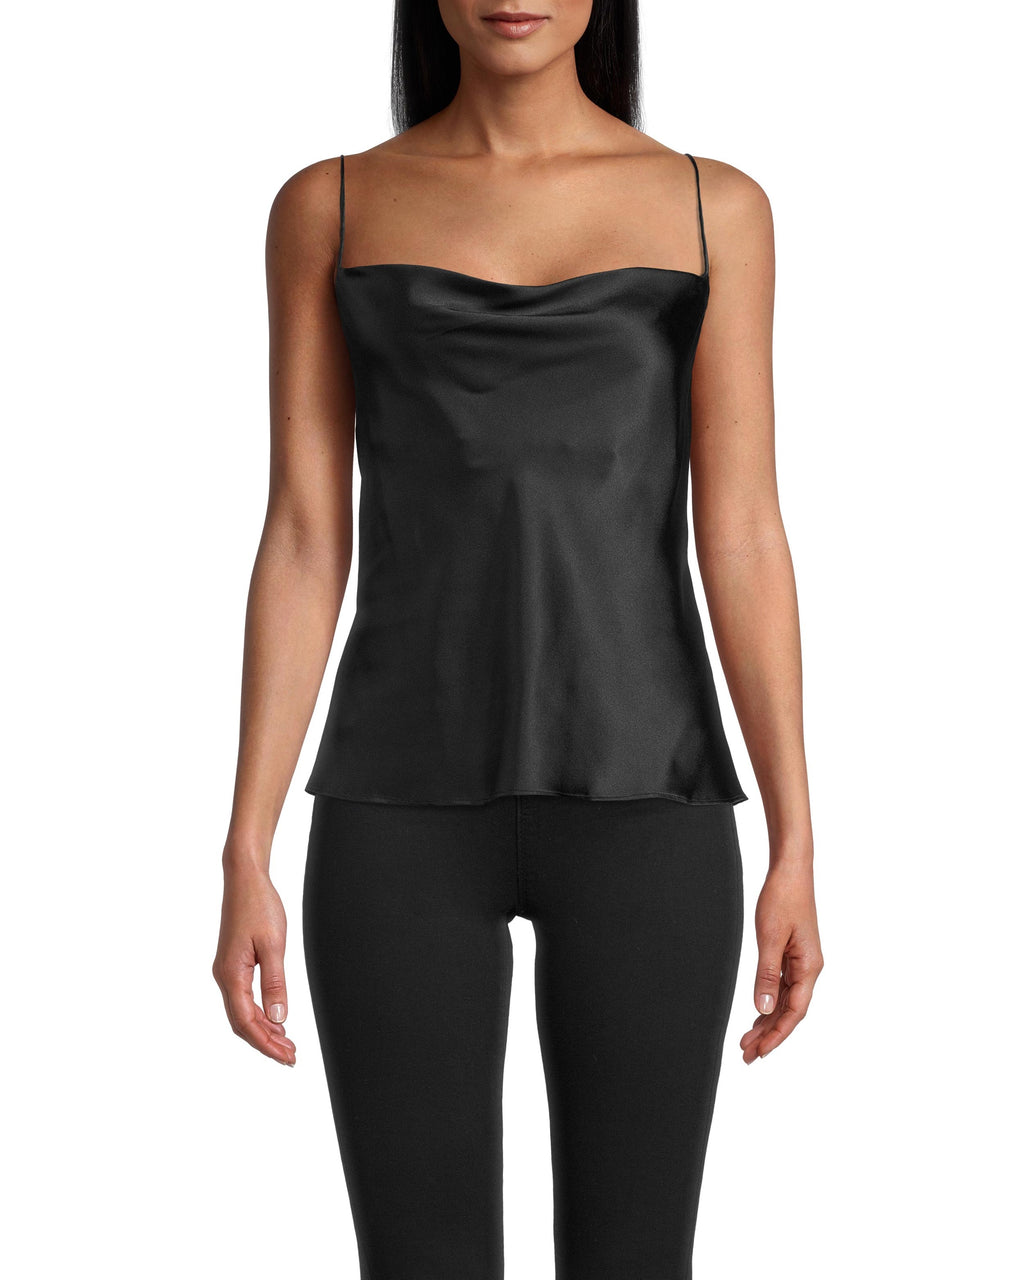 CT18362 - CROSS BACK CAMI - tops - shirts - Meet your new favorite date night top. This cami is designed from sleek silk and drapes perfectly to hug your curves. The spaghetti straps cross in the back for an added detail. Add 1 line break Stylist tip: Pair with one of our embellished leather jackets.